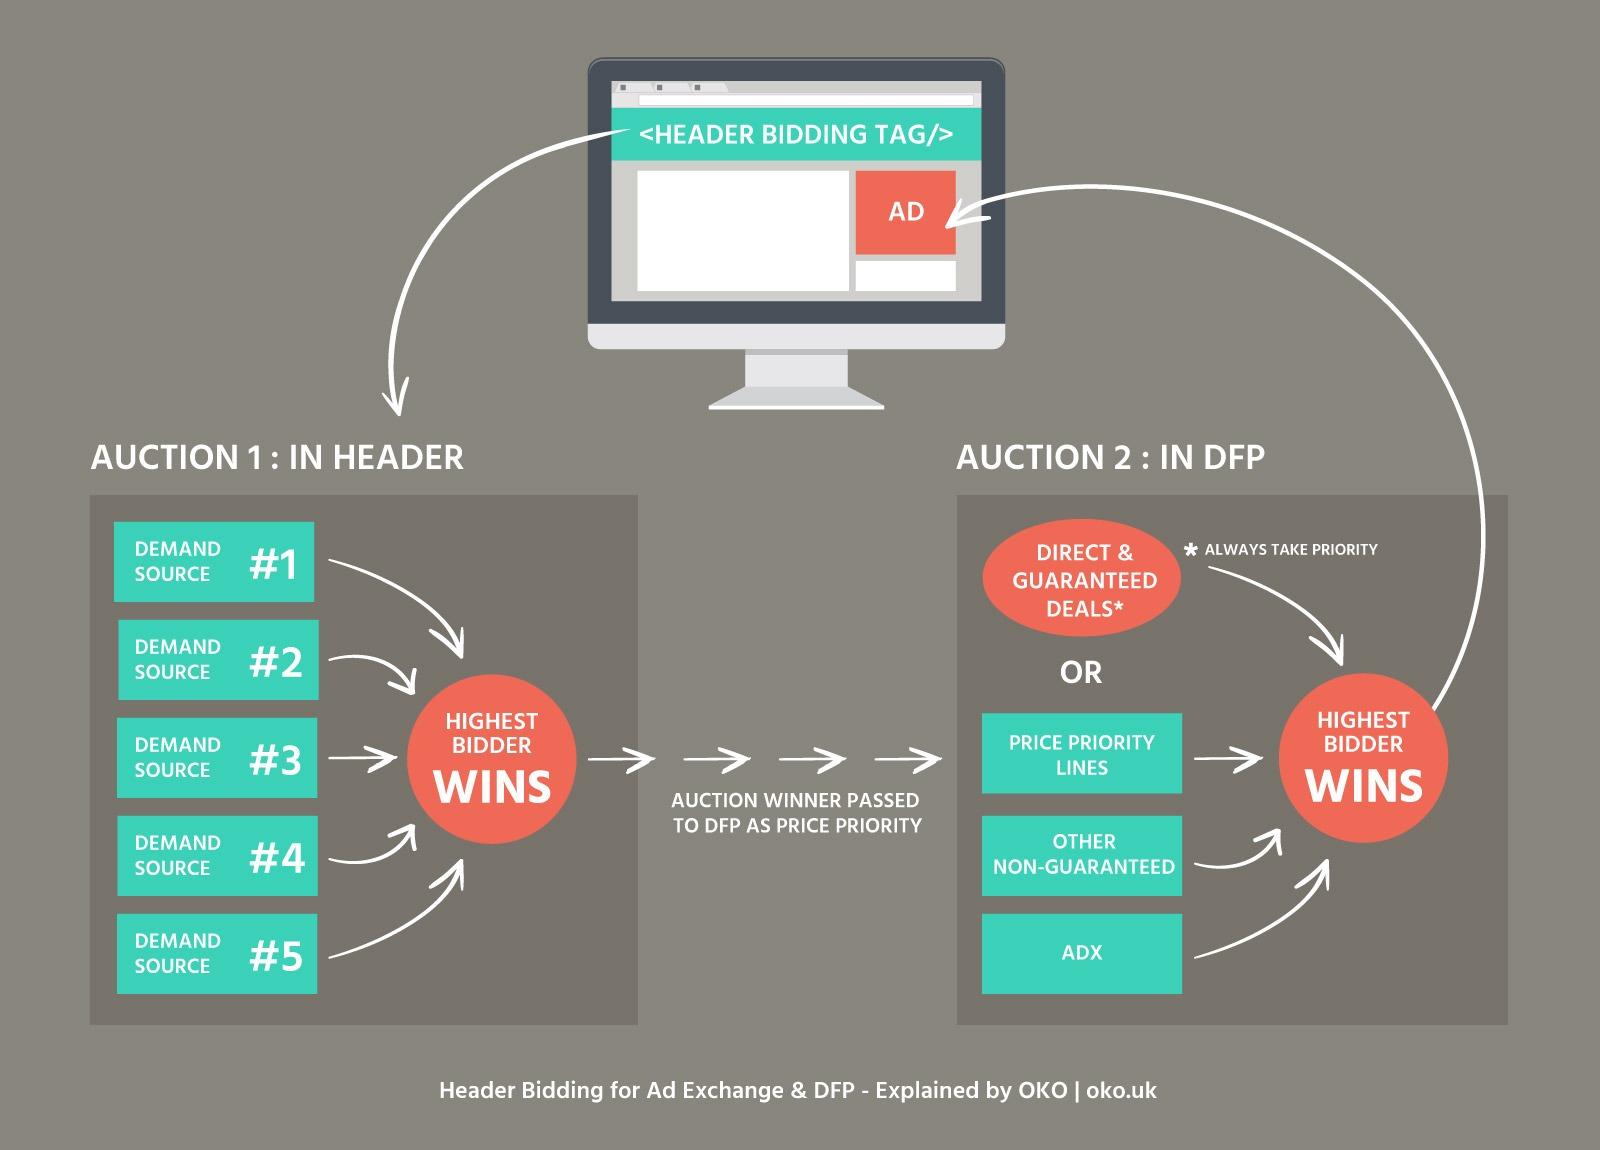 ad exchange for header bidding